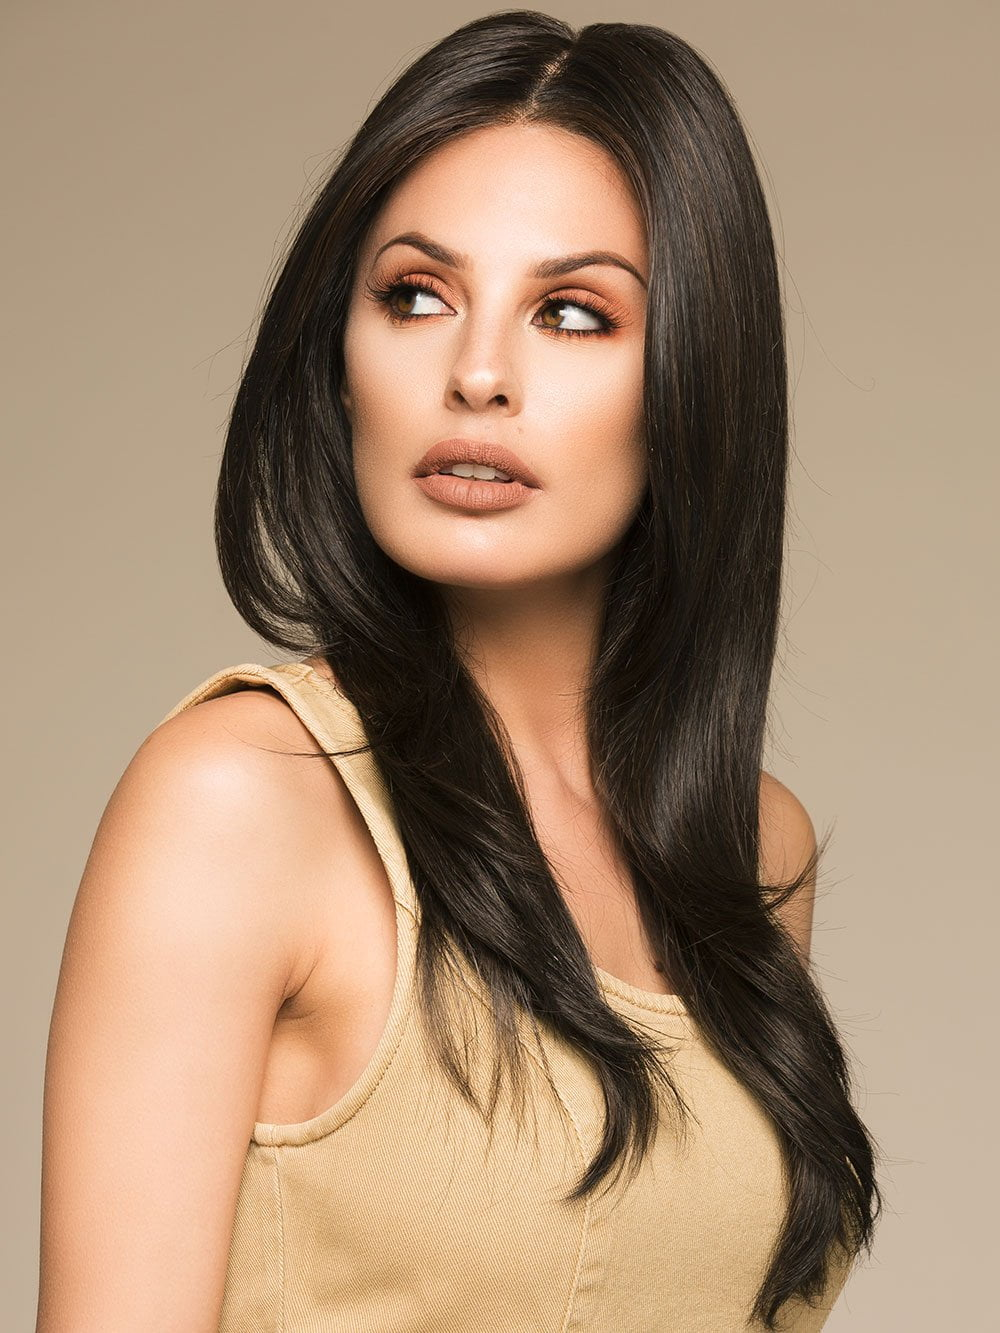 SCENE STEALER by RAQUEL WELCH in RL2/4 OFF BLACK | Black Evenly Blended with Dark Brown Highlights